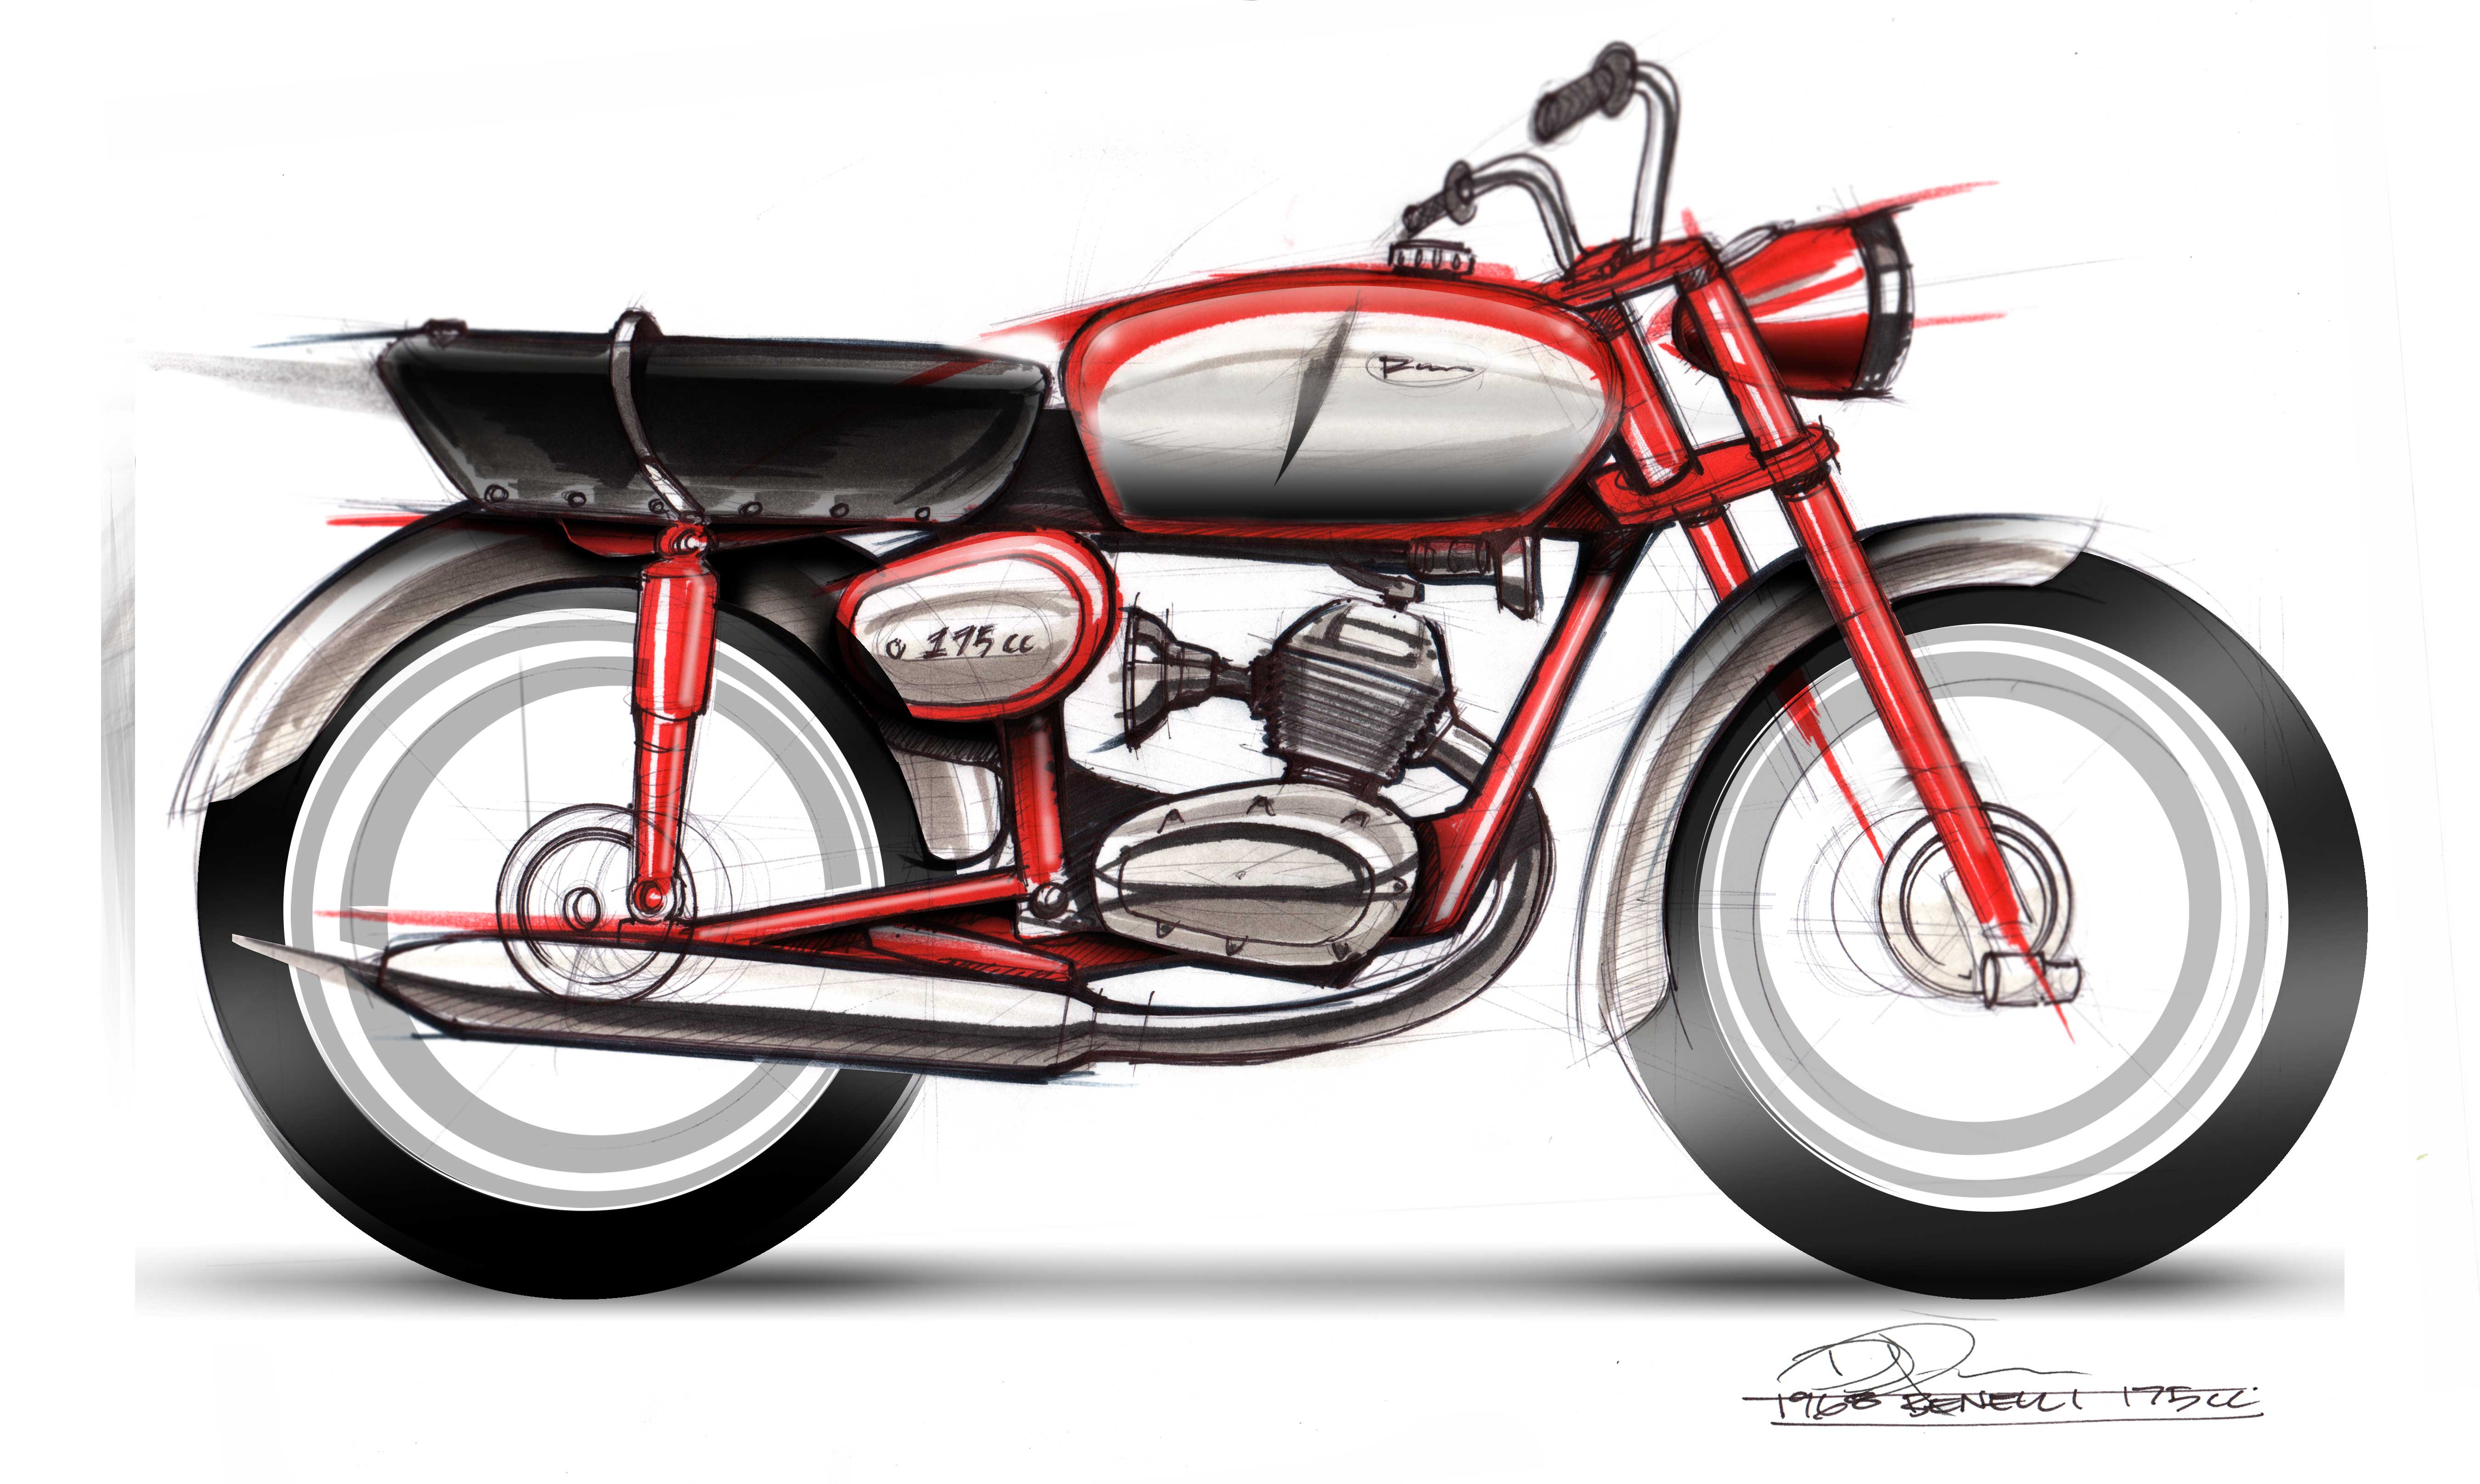 Motorcycle Sketch Demo 1968 Benelli 175cc Lineweights